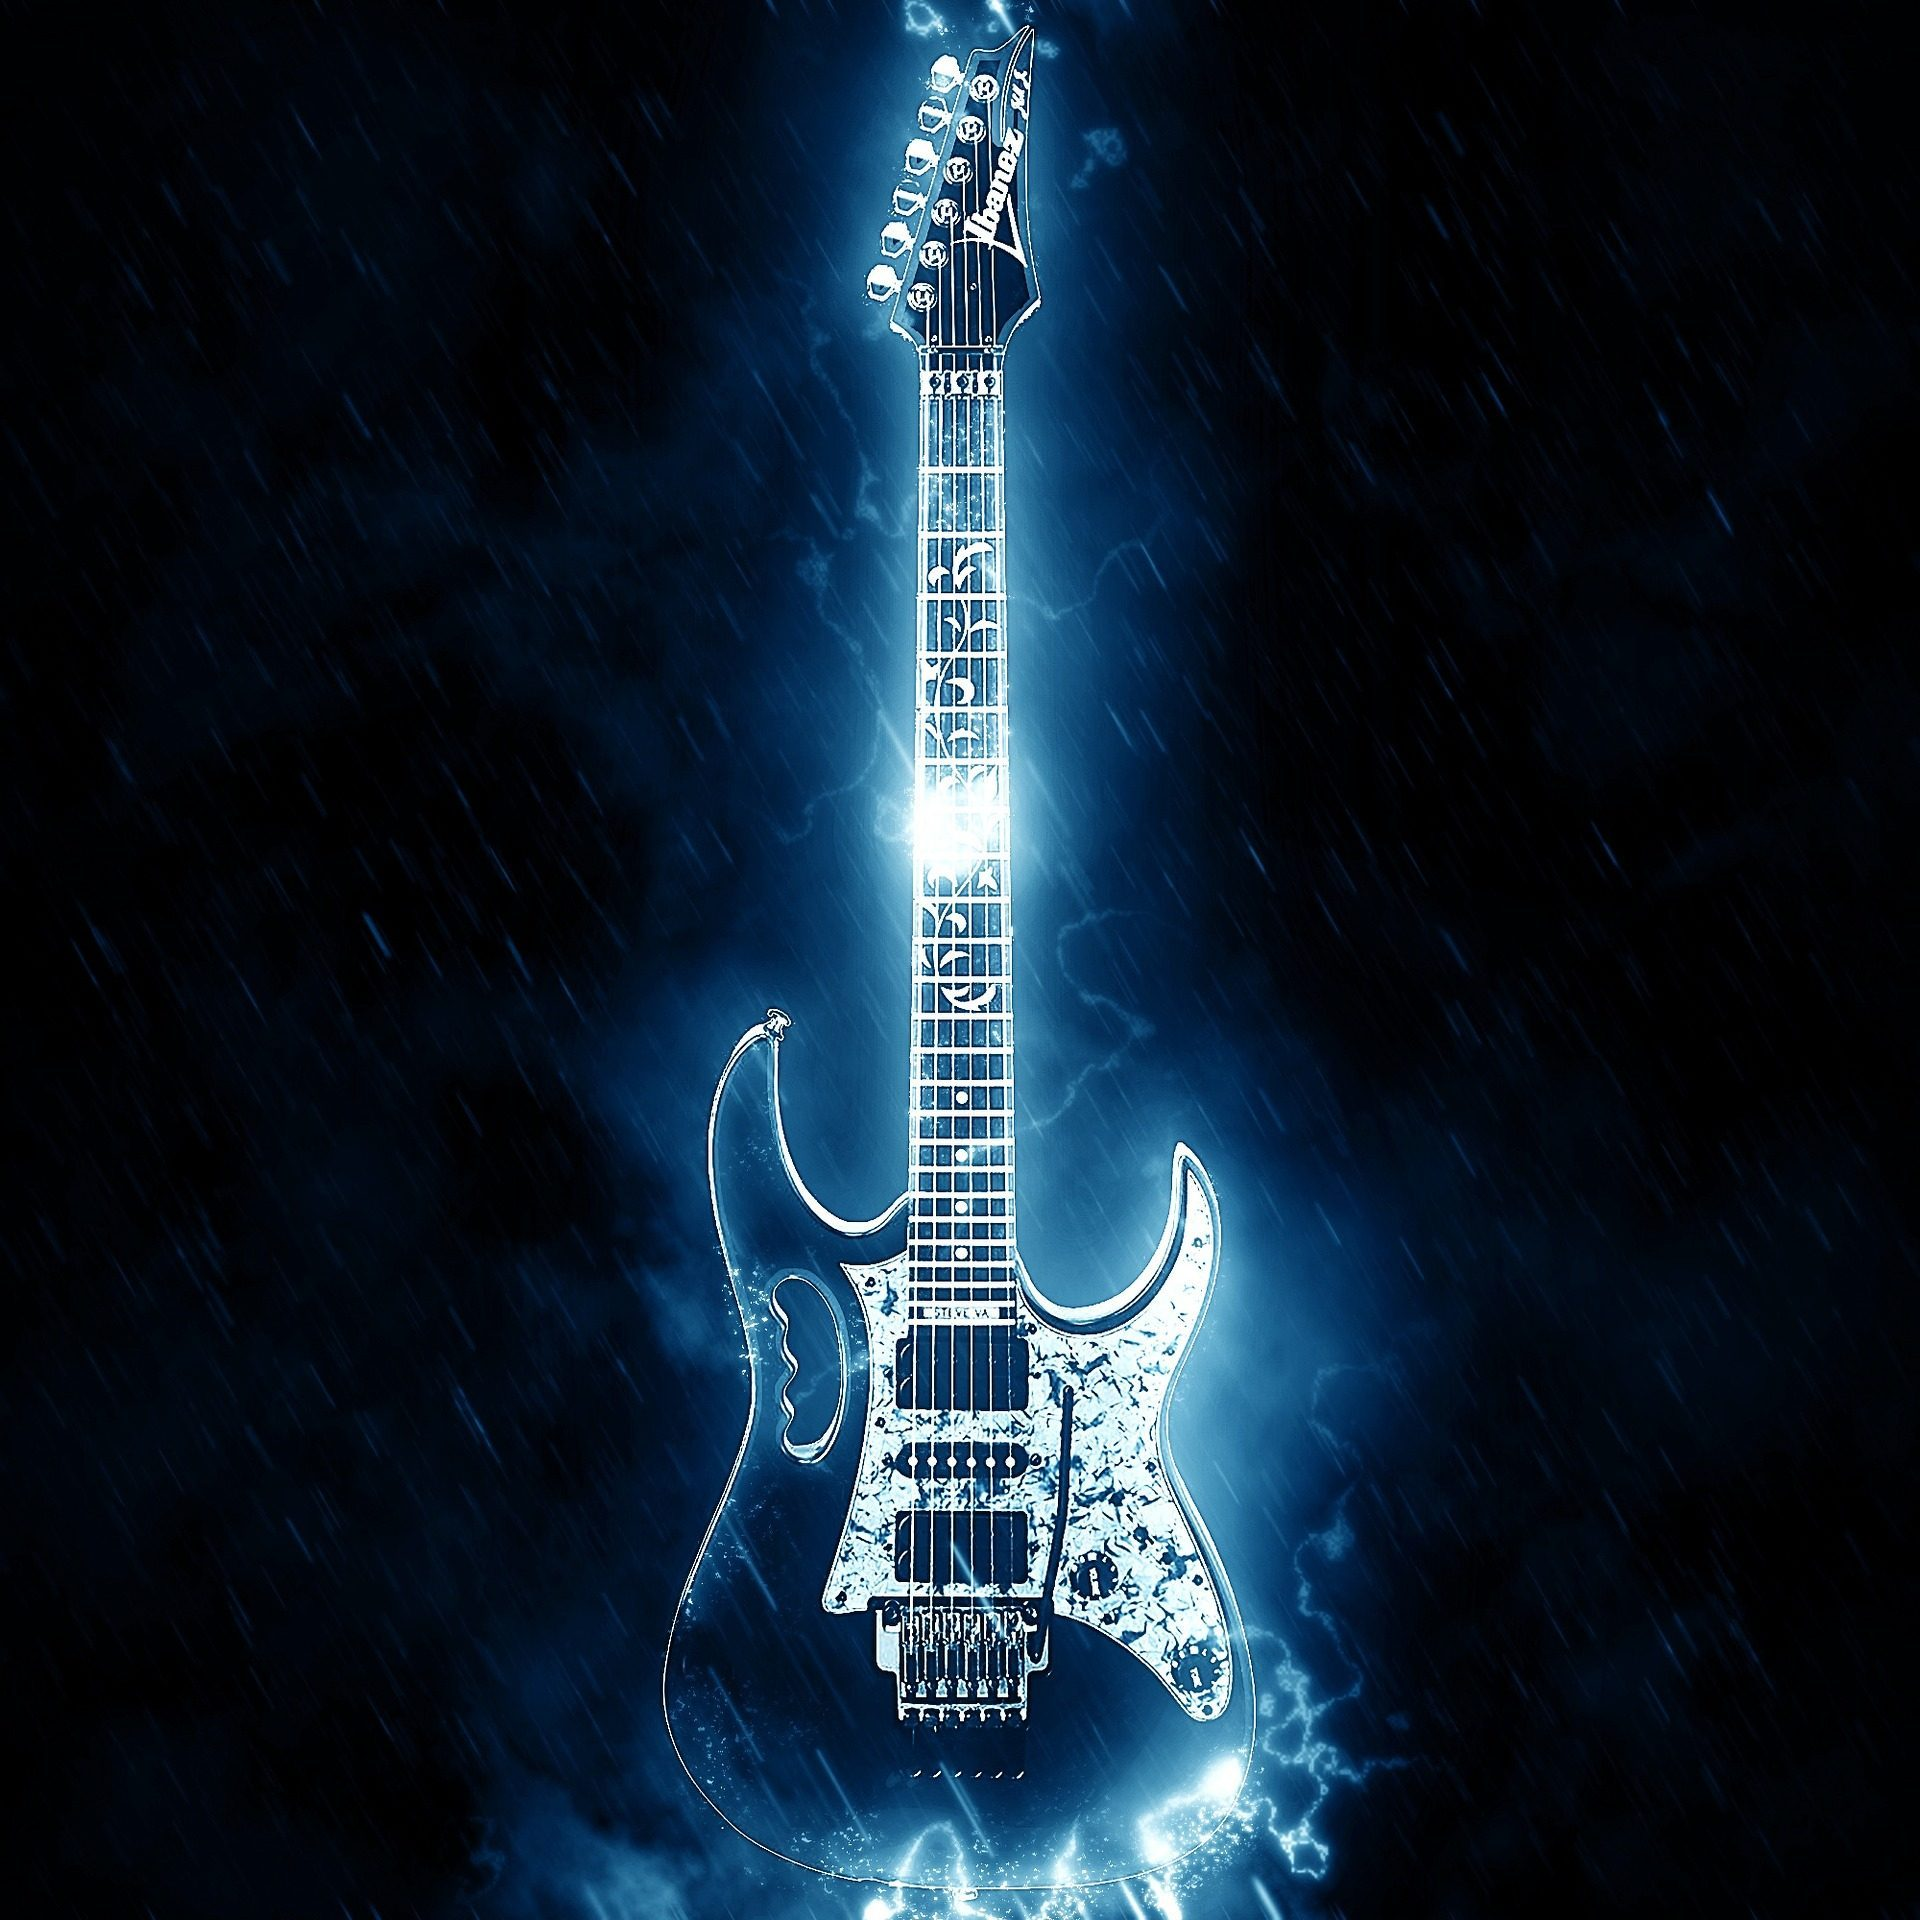 Electric Guitar Wallpaper 4k